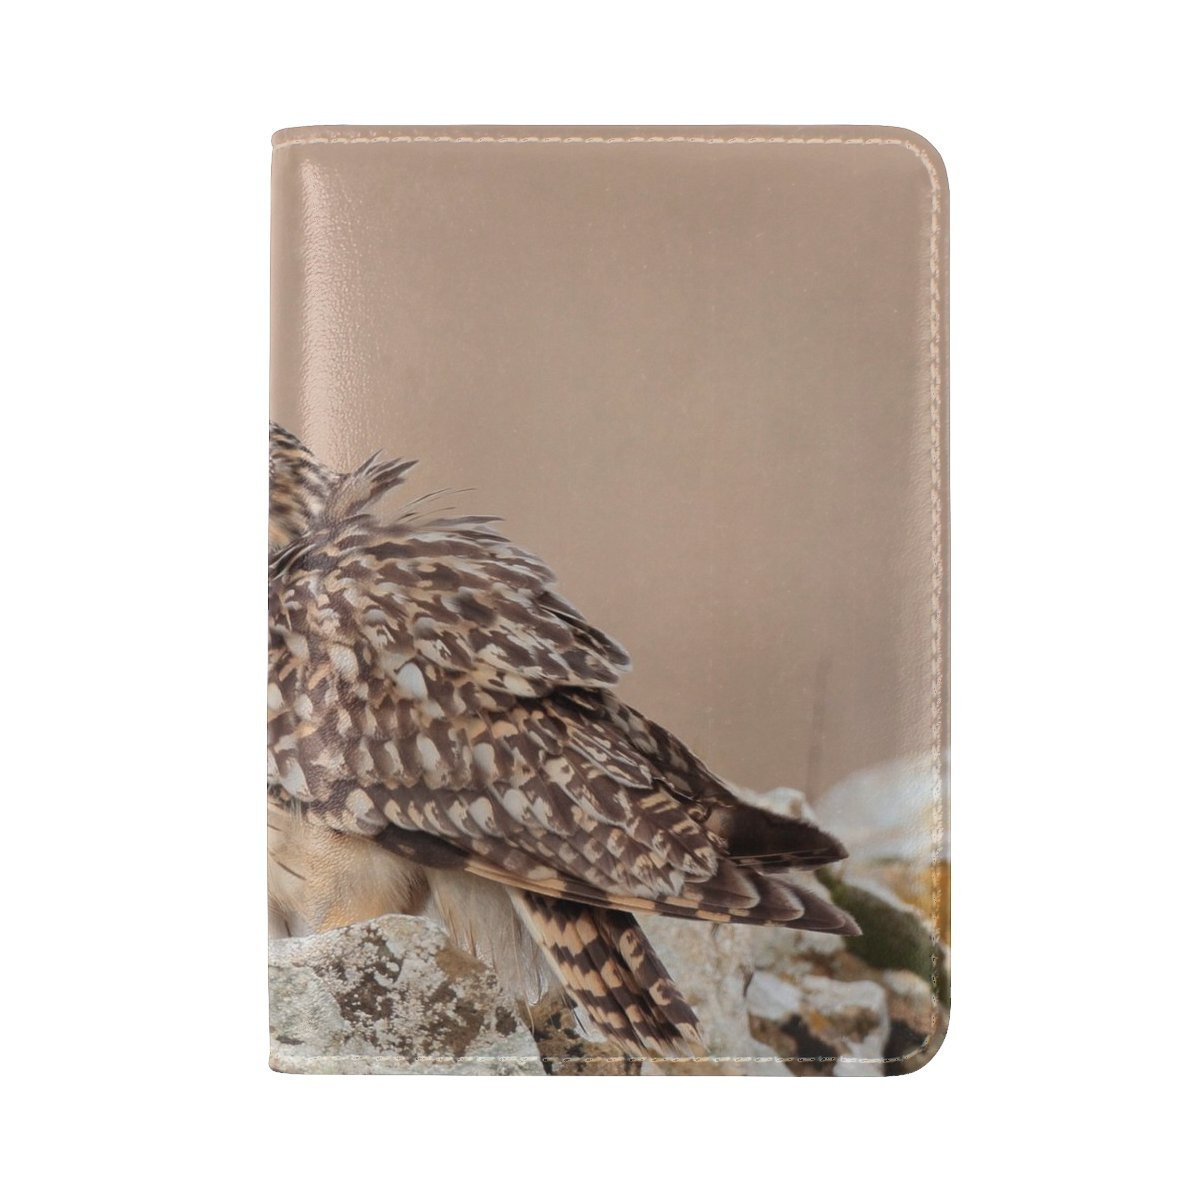 Animal Owl Short-eared Brown Wild Animated Autumn Taupe Stone Leather Passport Holder Cover Case Travel One Pocket